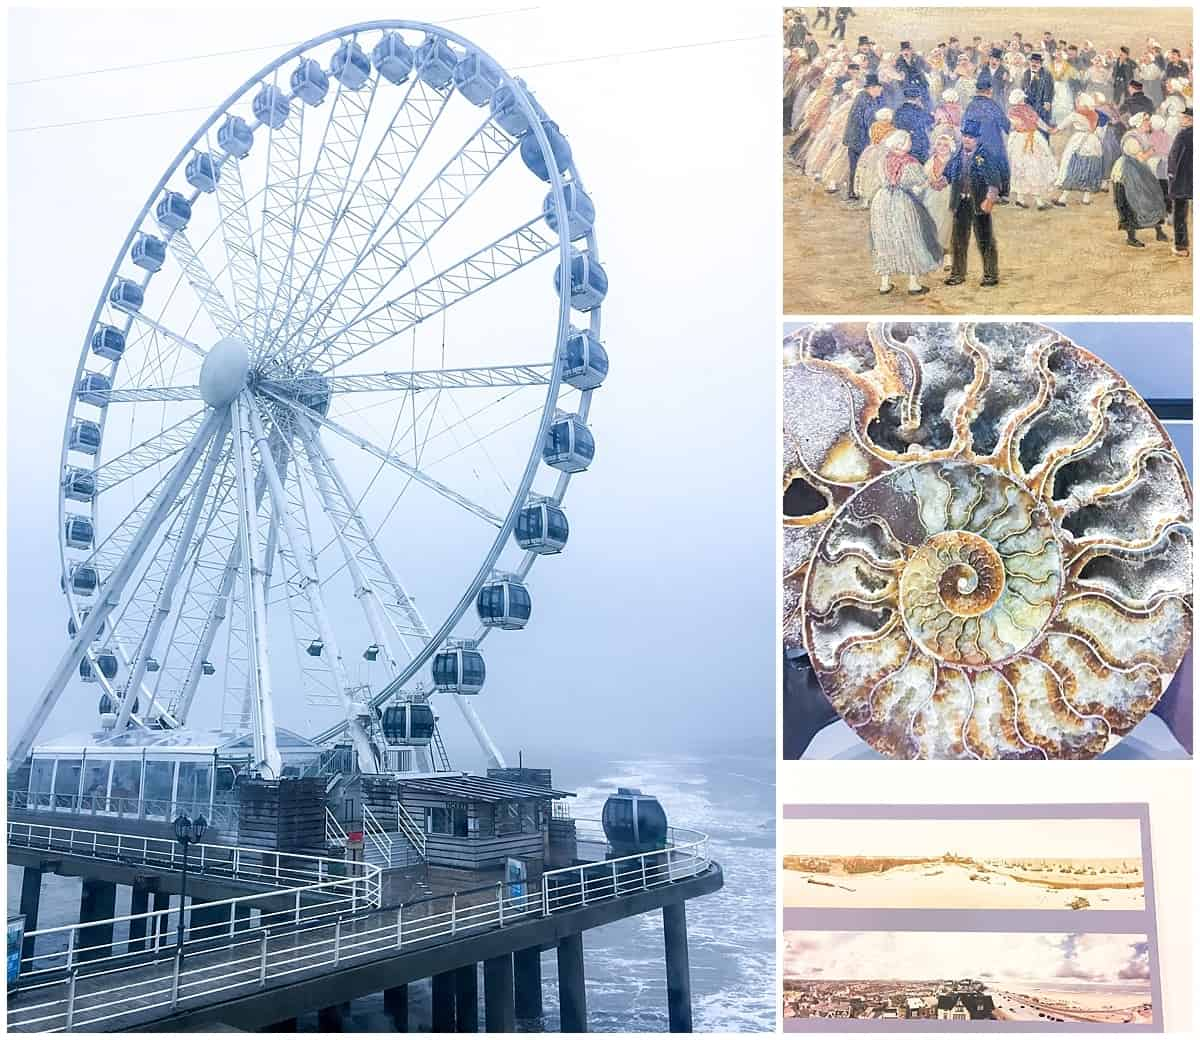 200 Years of Scheveningen Beach